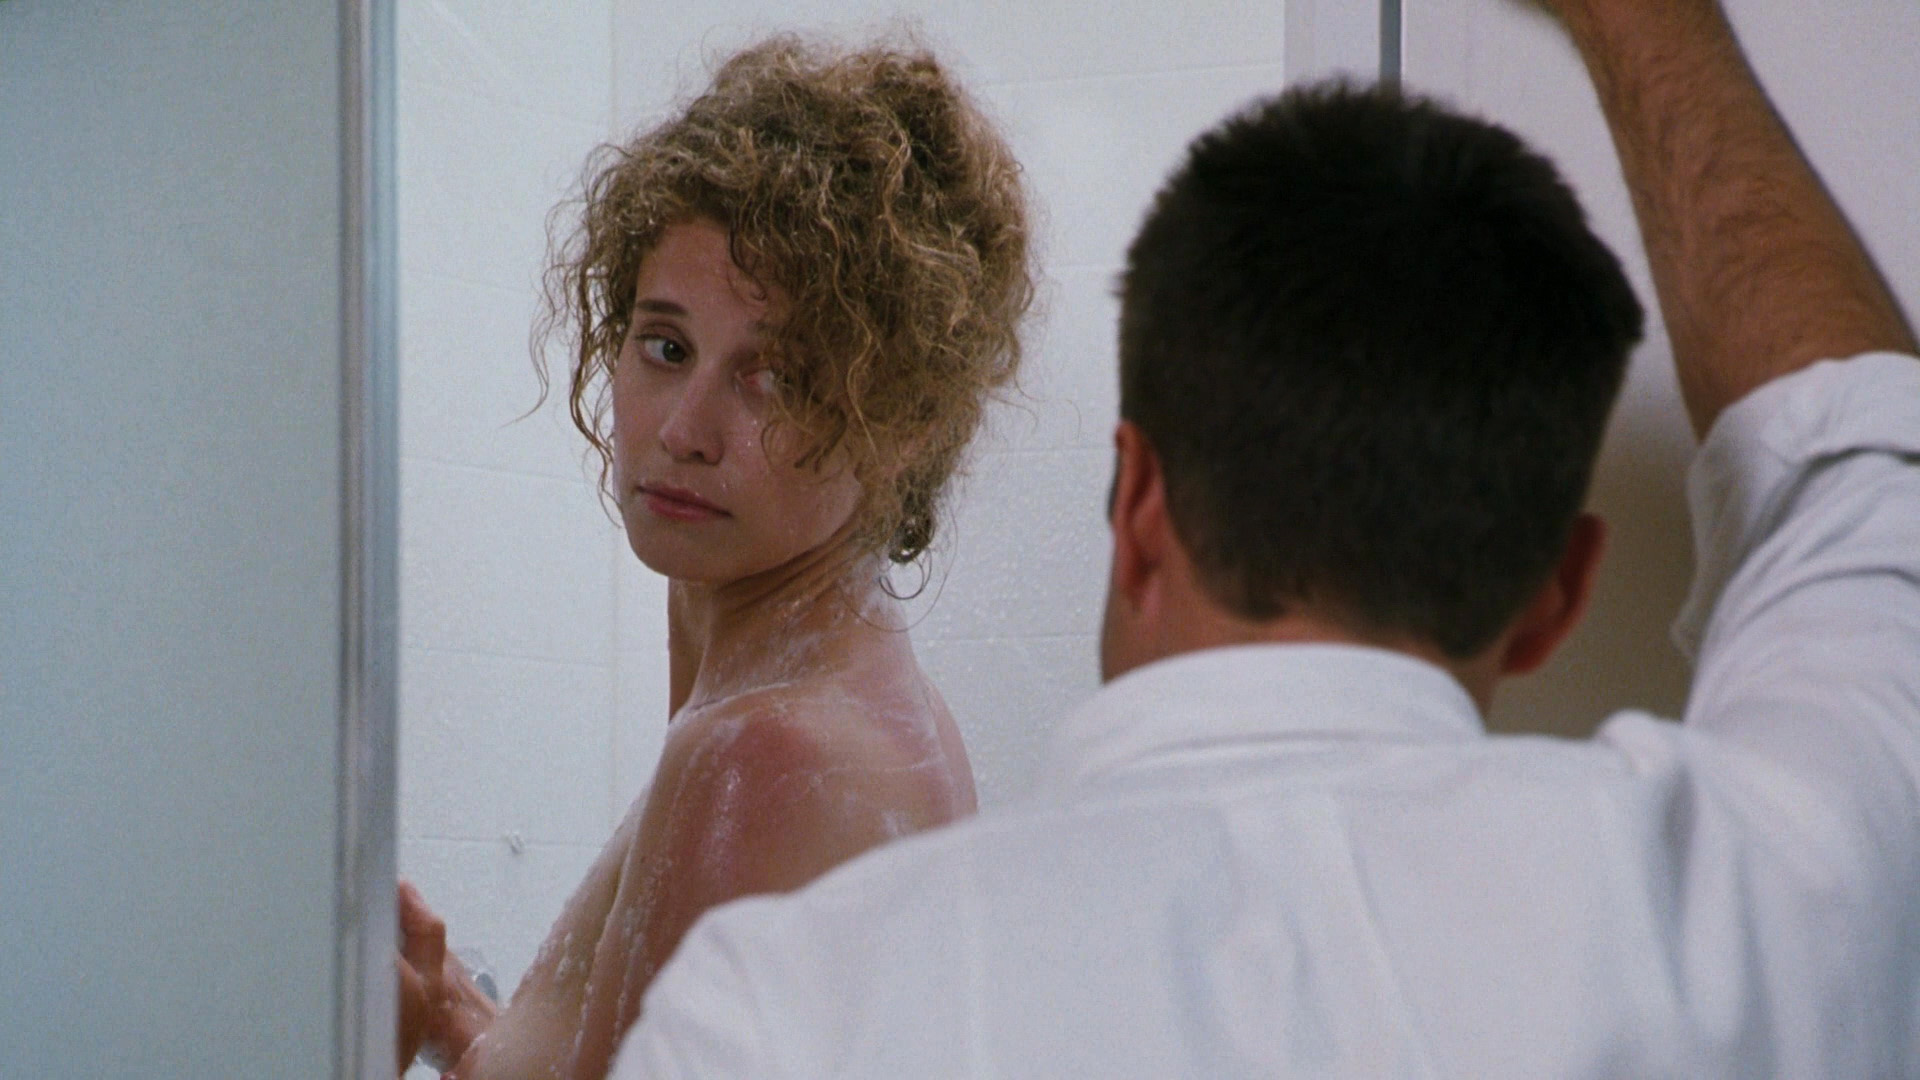 Nancy Travis, Annabella Sciorra – Internal Affairs (1990) HD 1080p